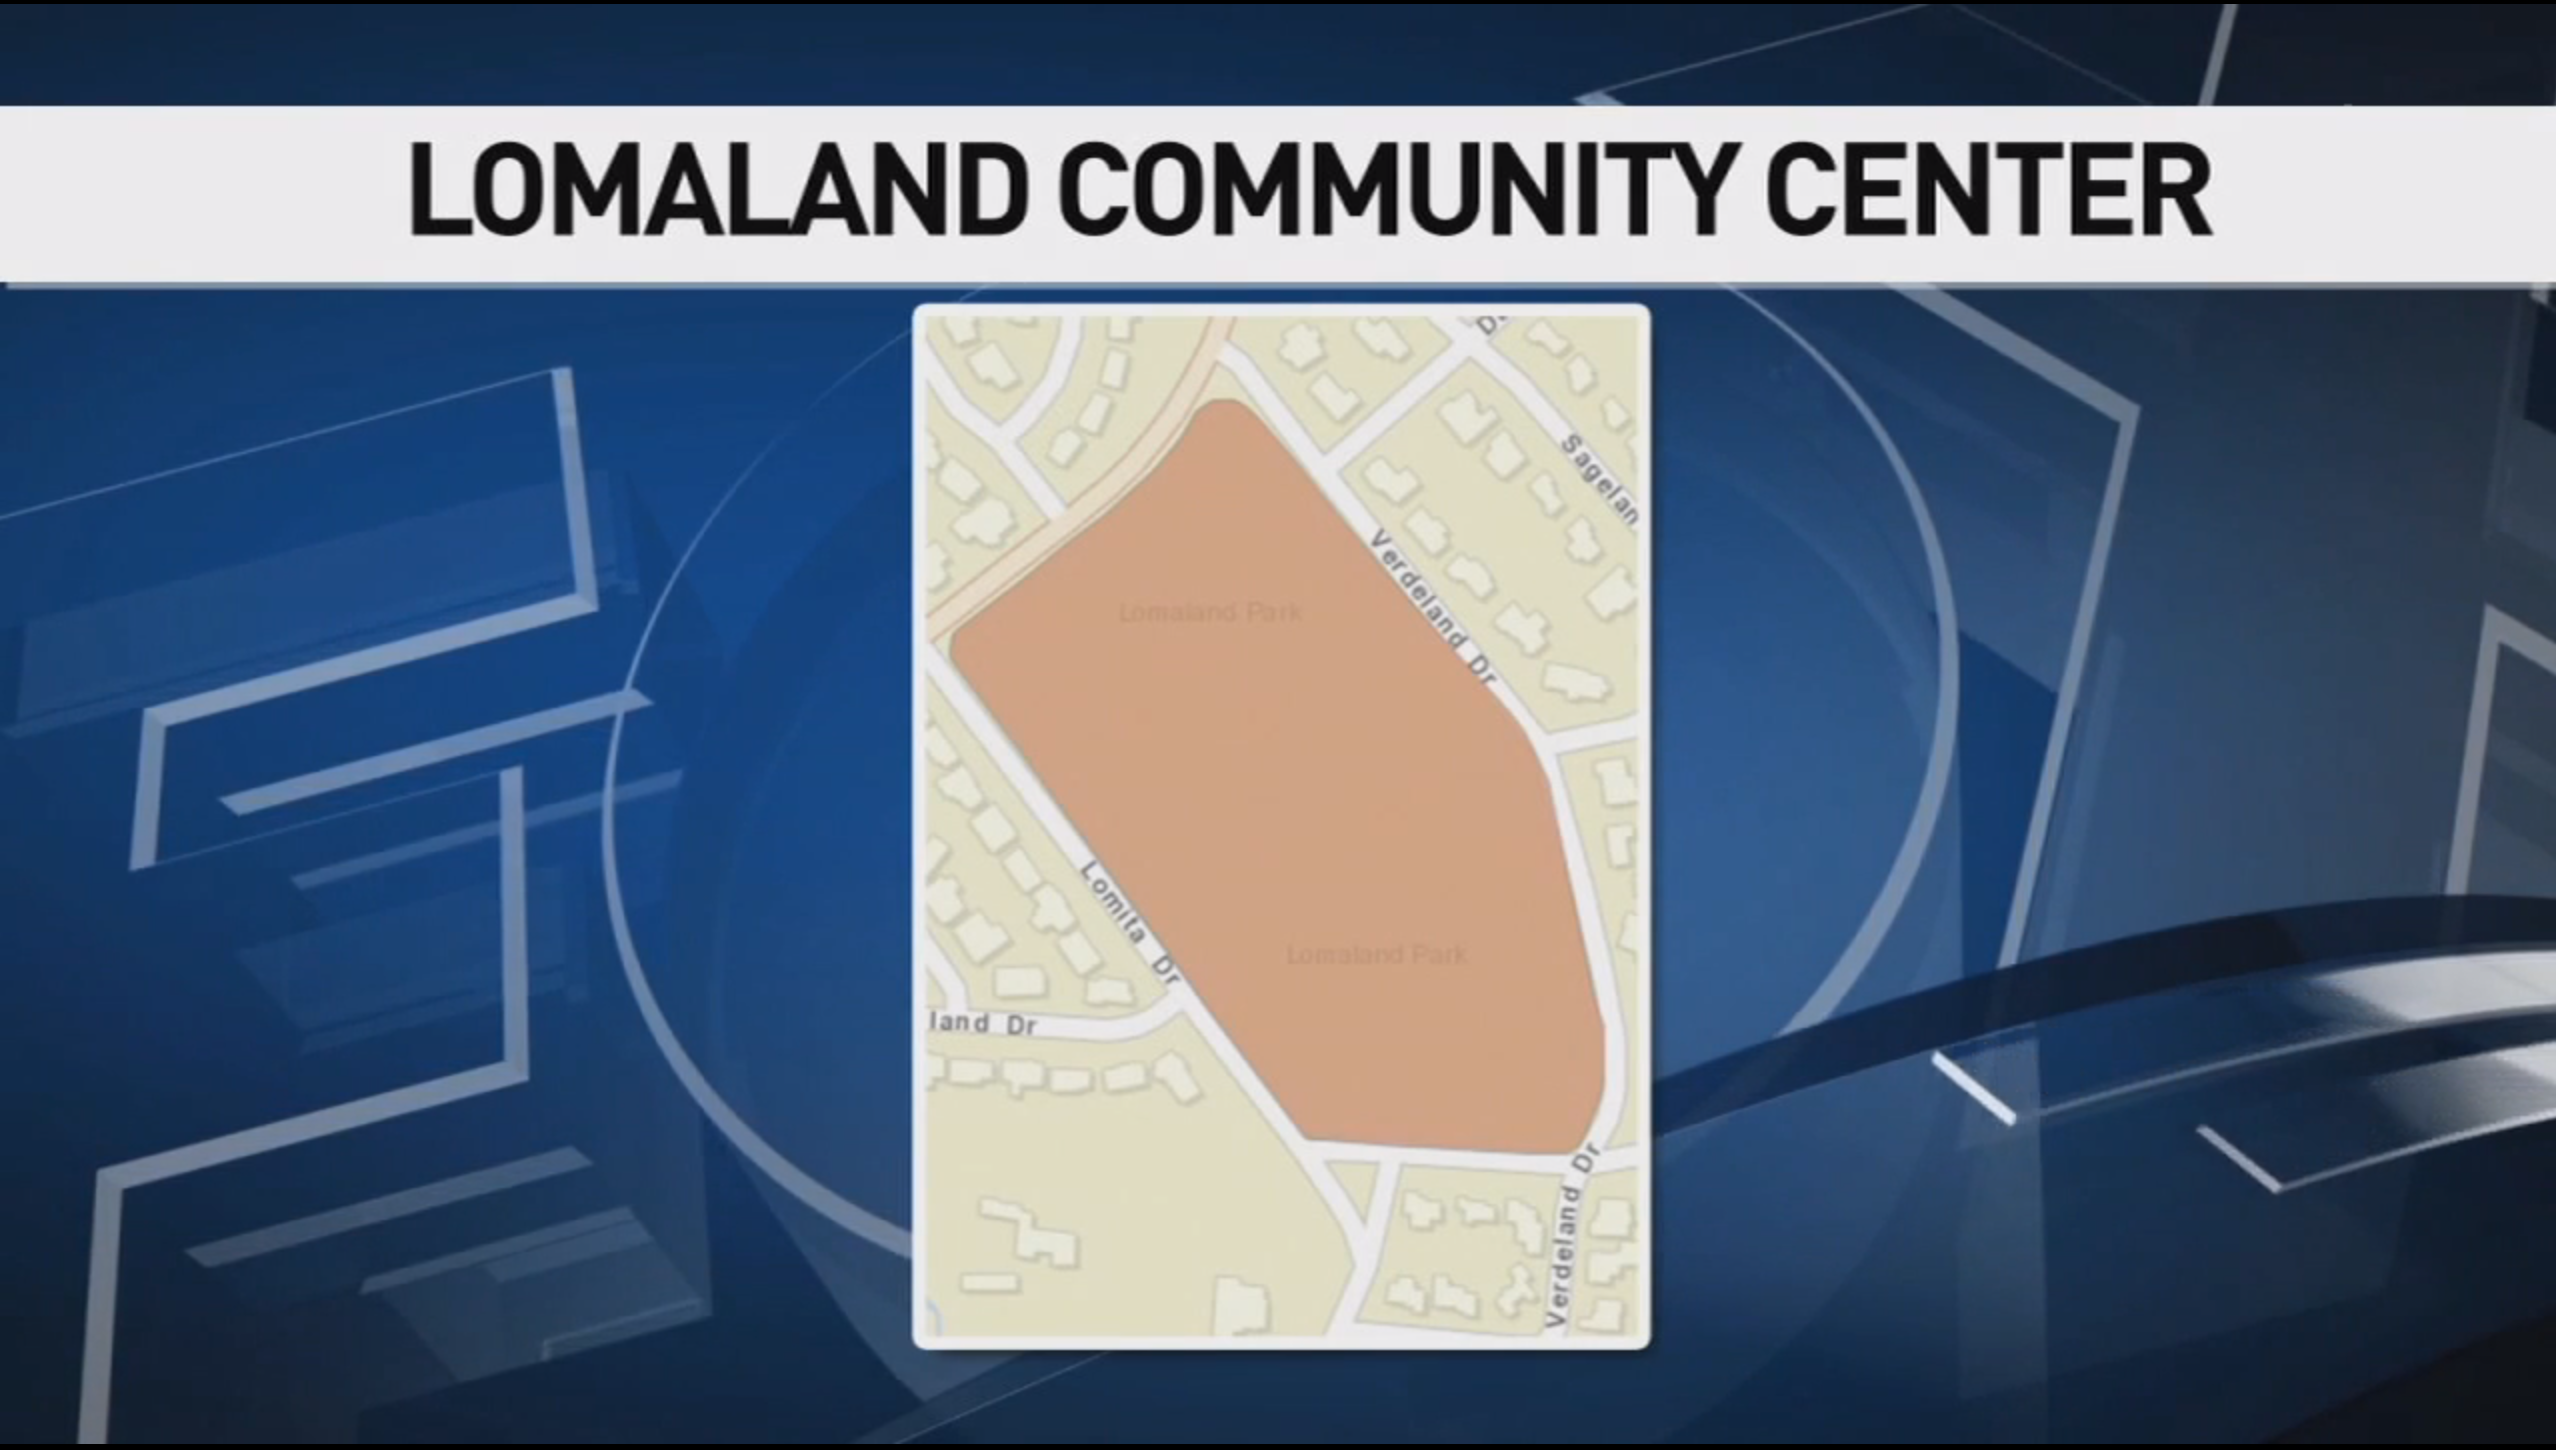 Lomaland Community Center